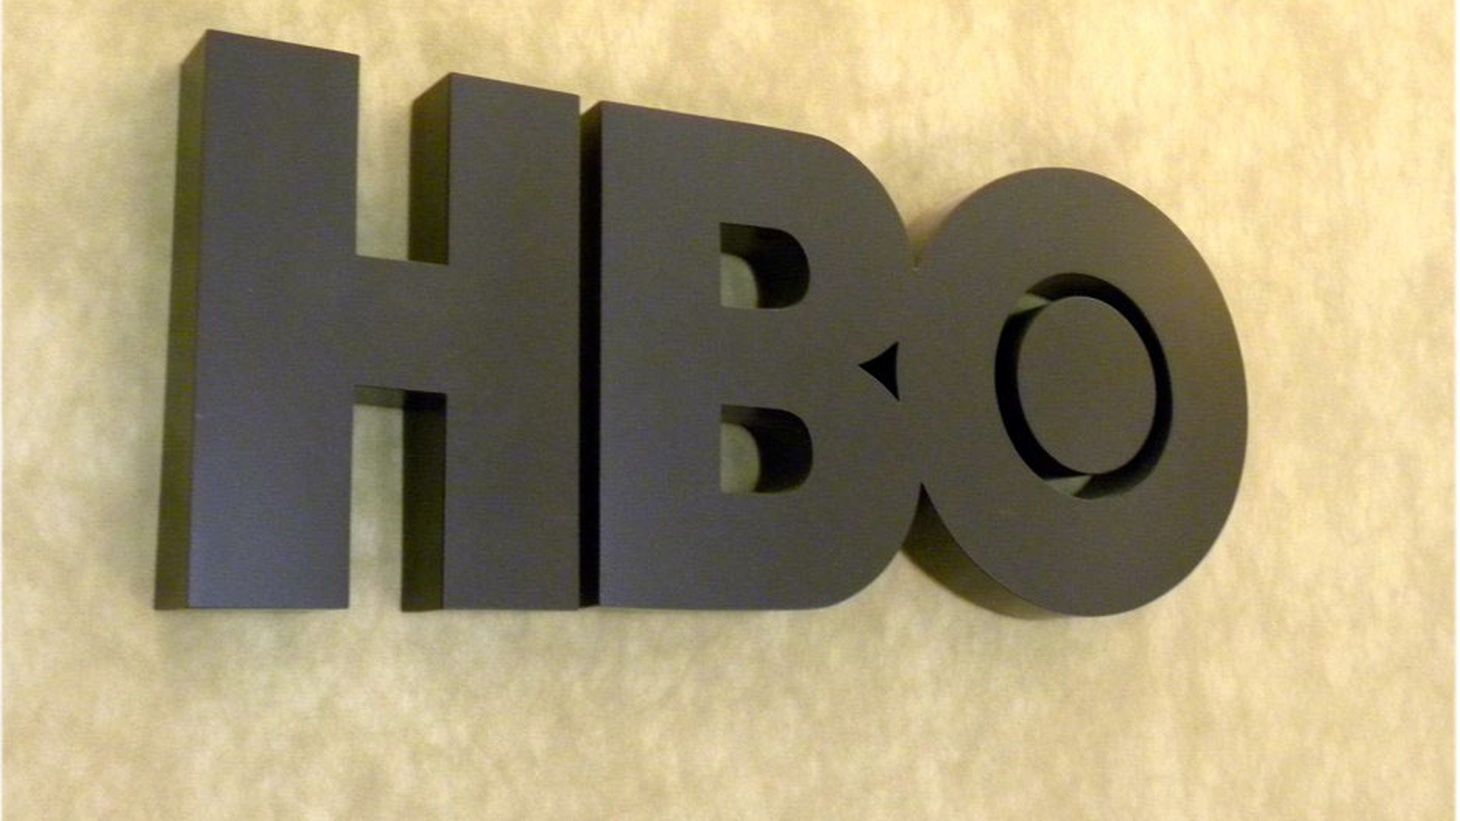 AT&T now owns HBO, since the Time Warner merger went through. AT&T has made it clear it wants from the channel: More subscribers watching more programming more hours of the day.